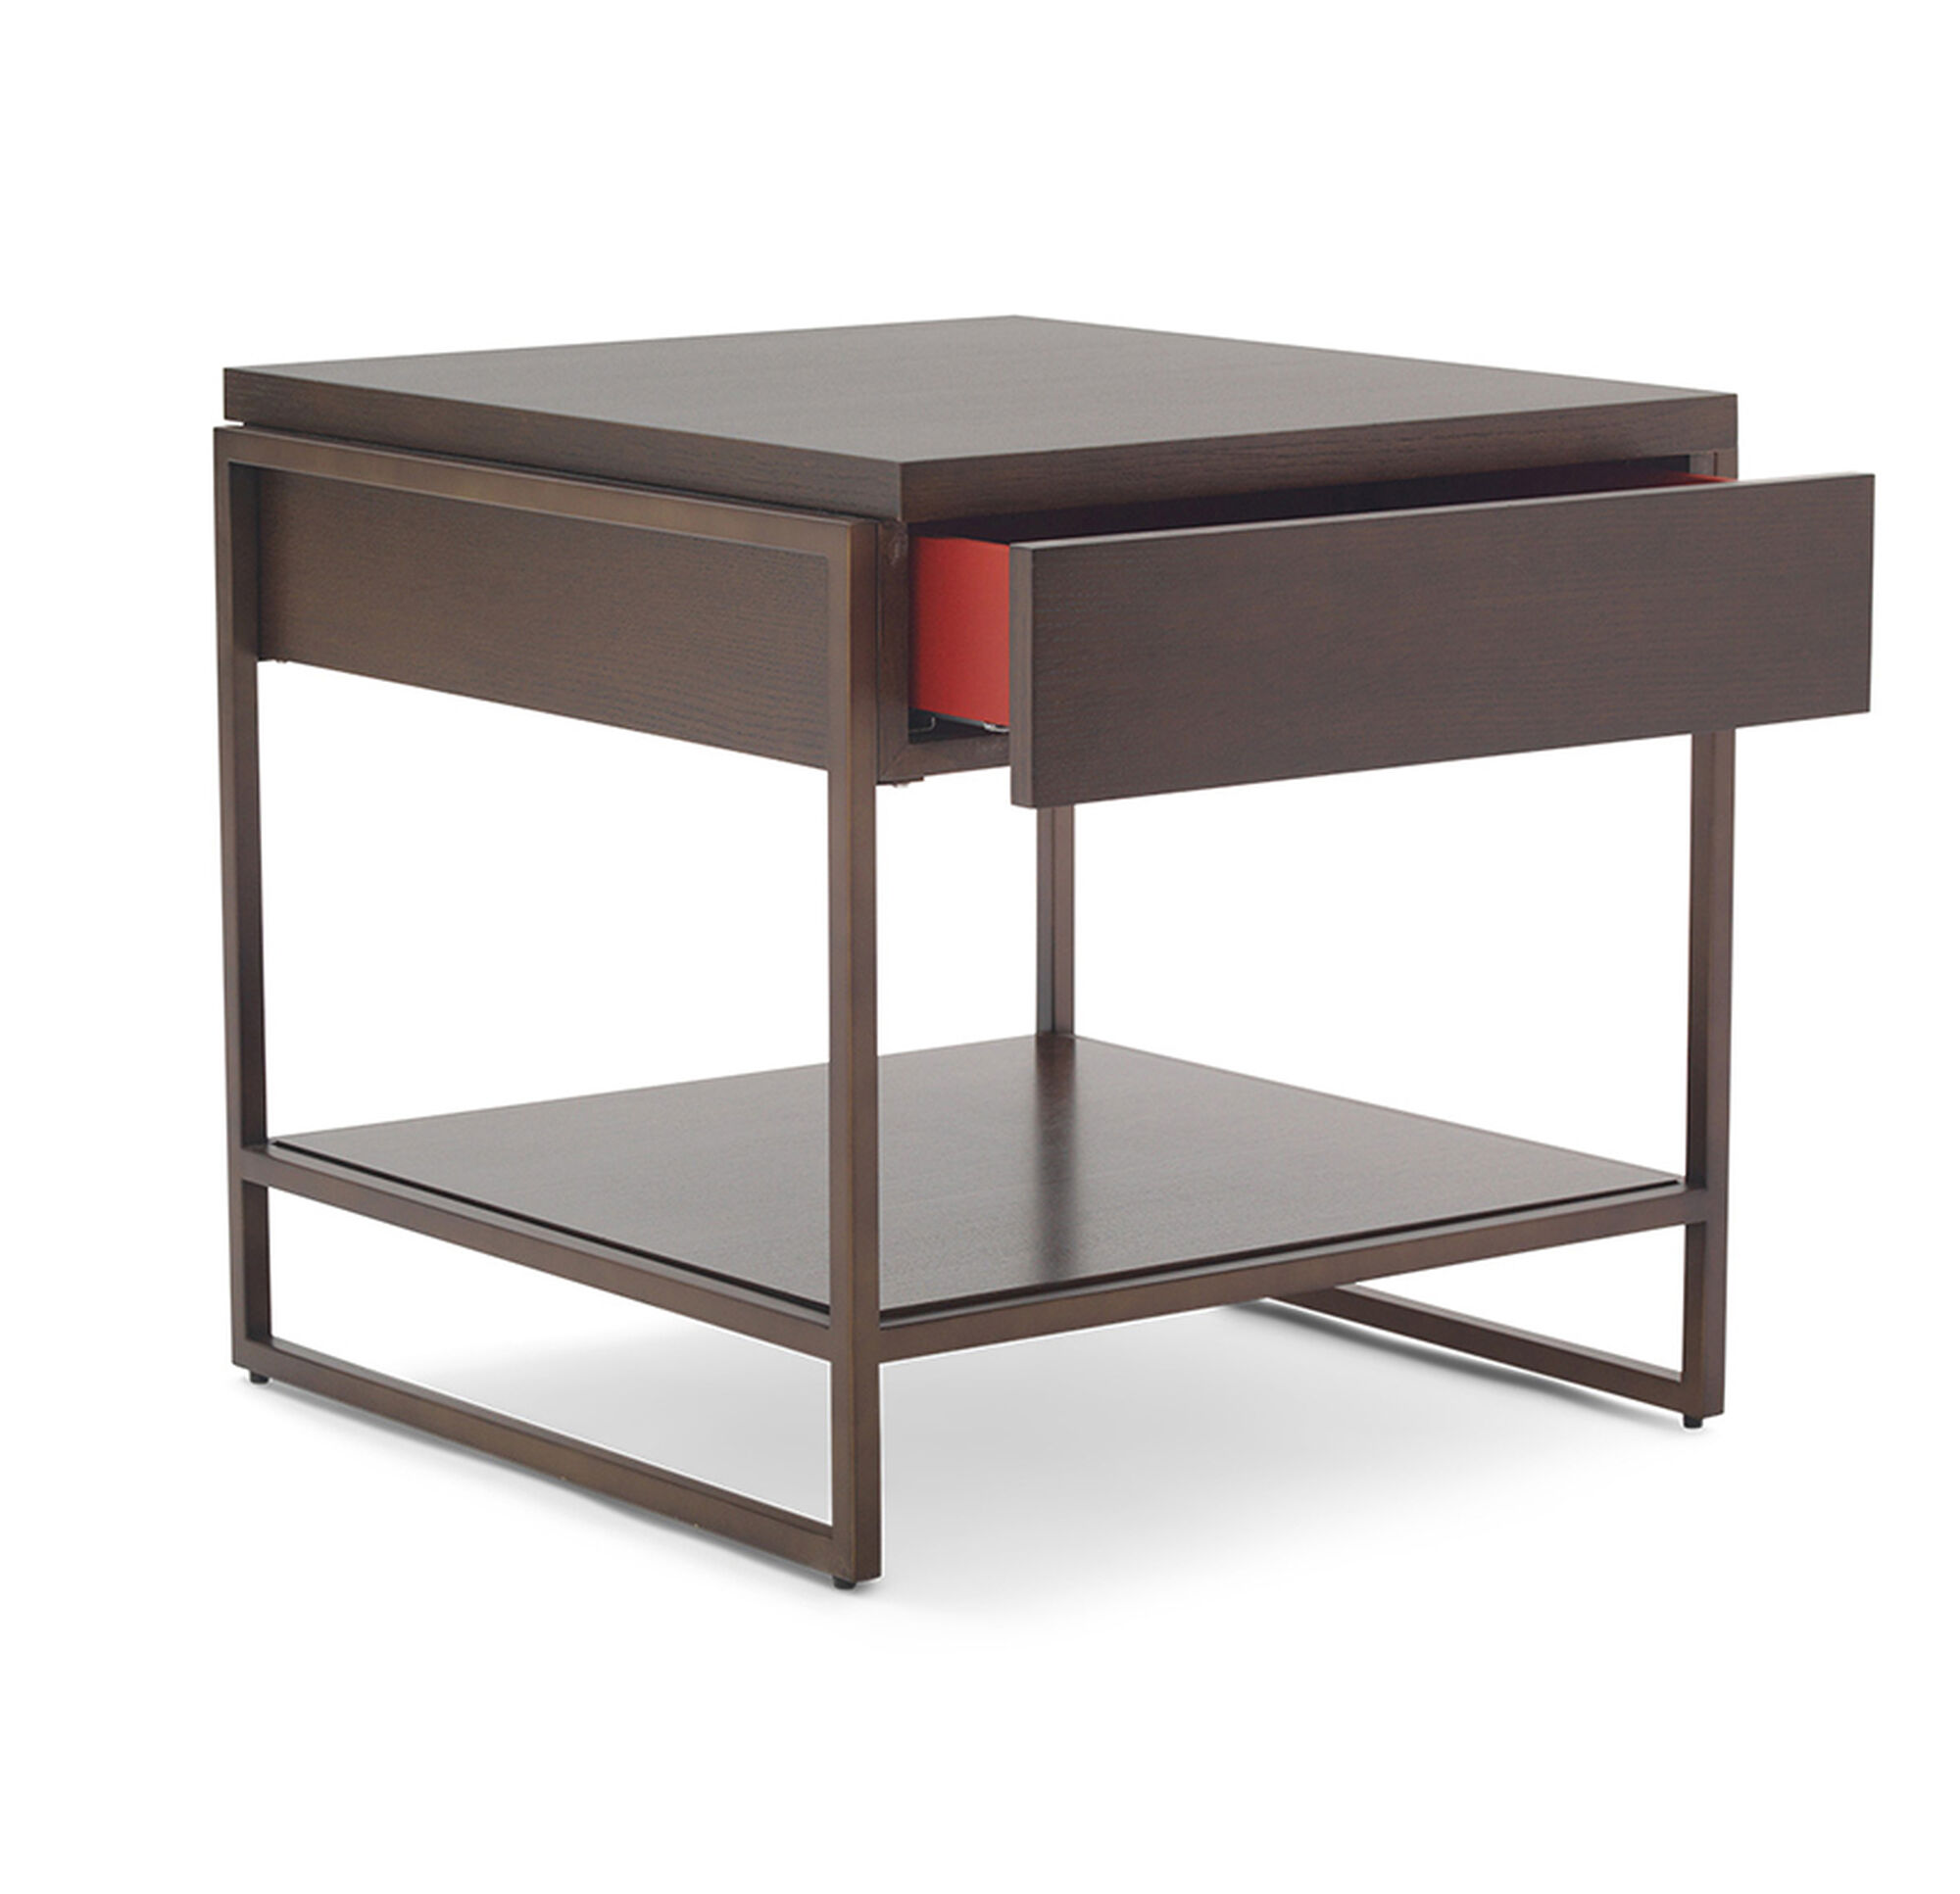 BASSEY DRAWER SIDE TABLE